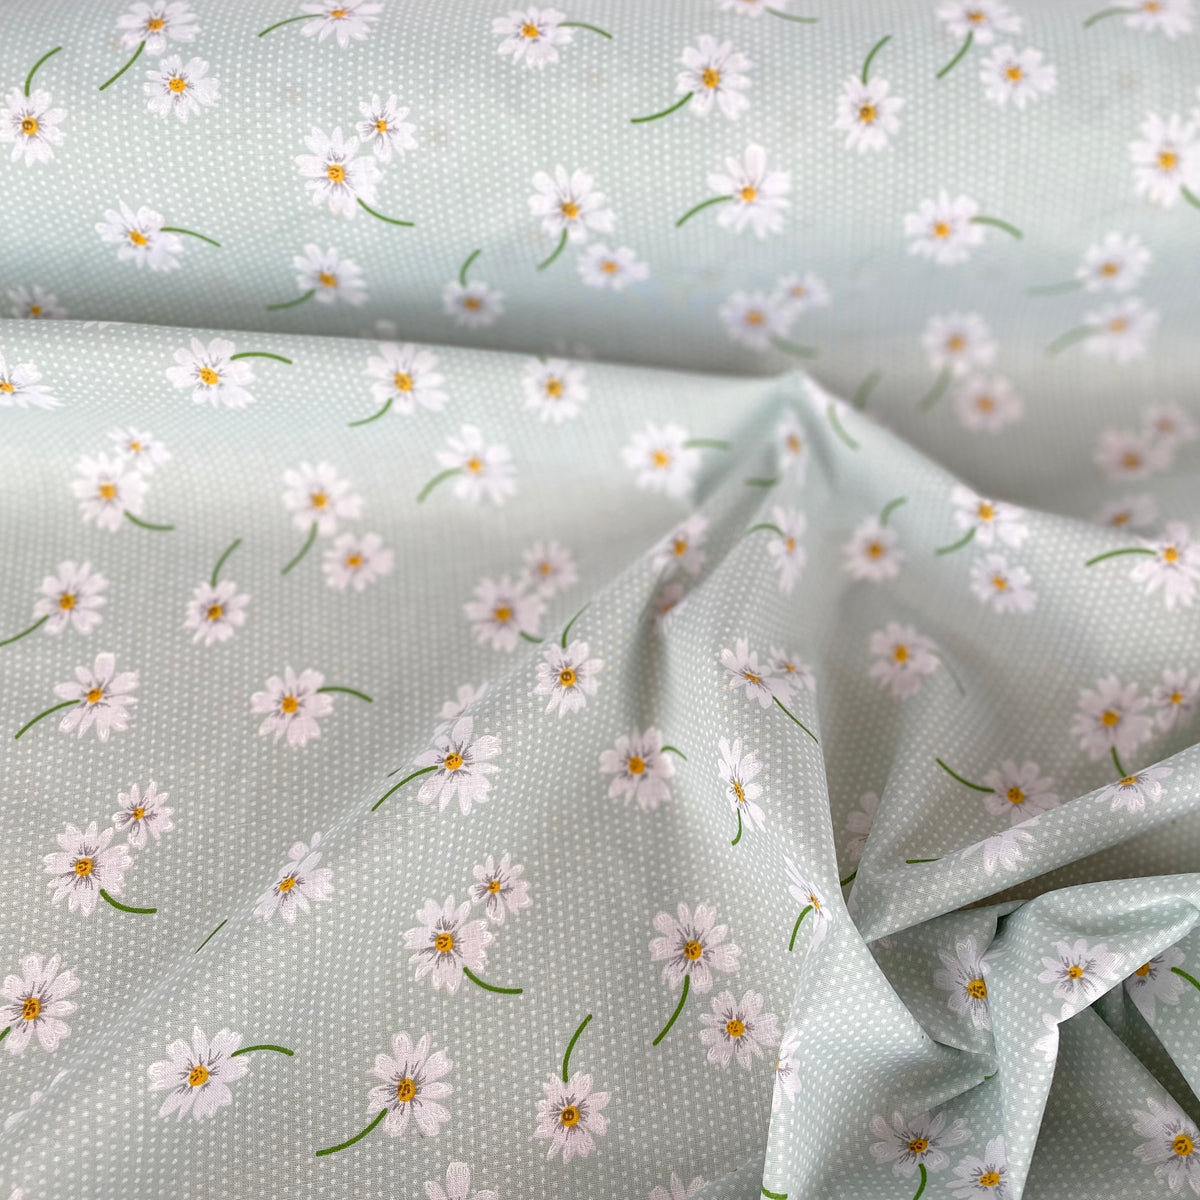 Dotty Daisy pale mint, Polycotton fabric, sold per half metre, 112cm wide